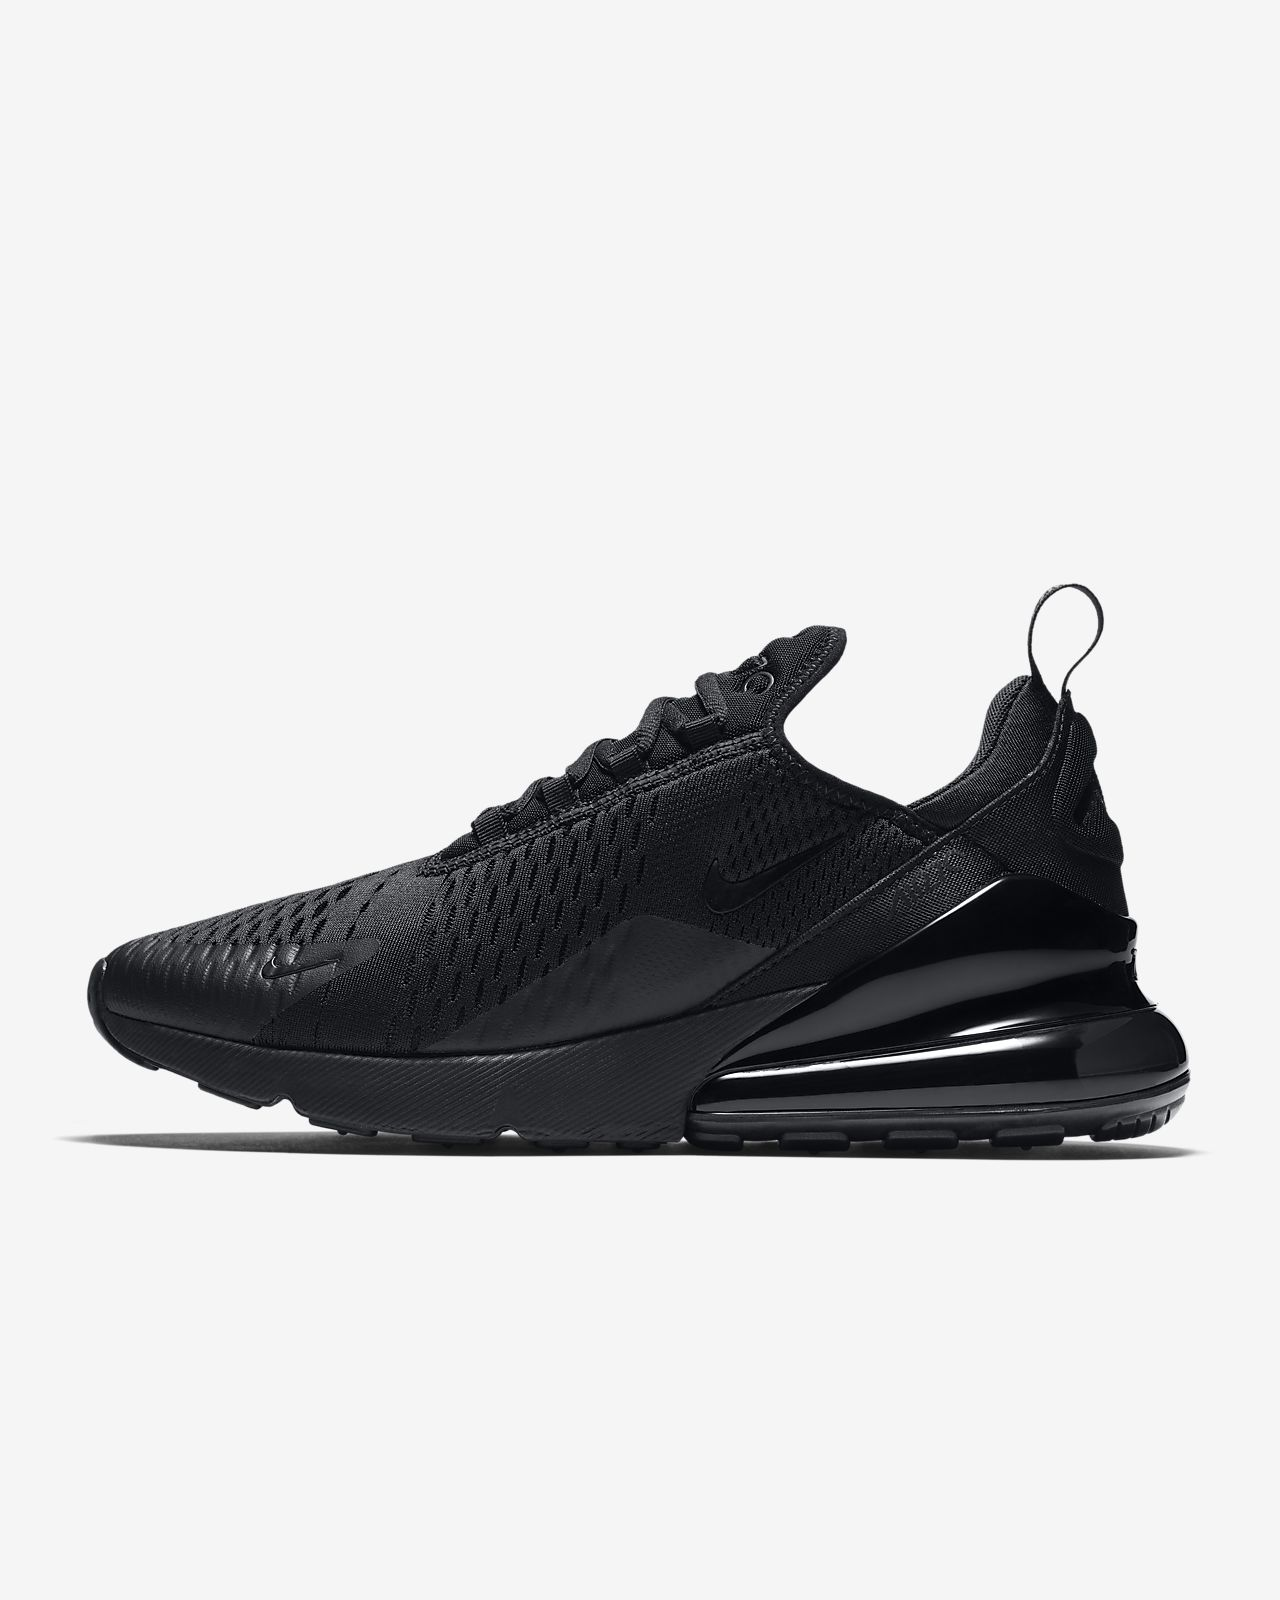 5db5e58d453 Nike Air Max 270 Men s Shoe. Nike.com CA